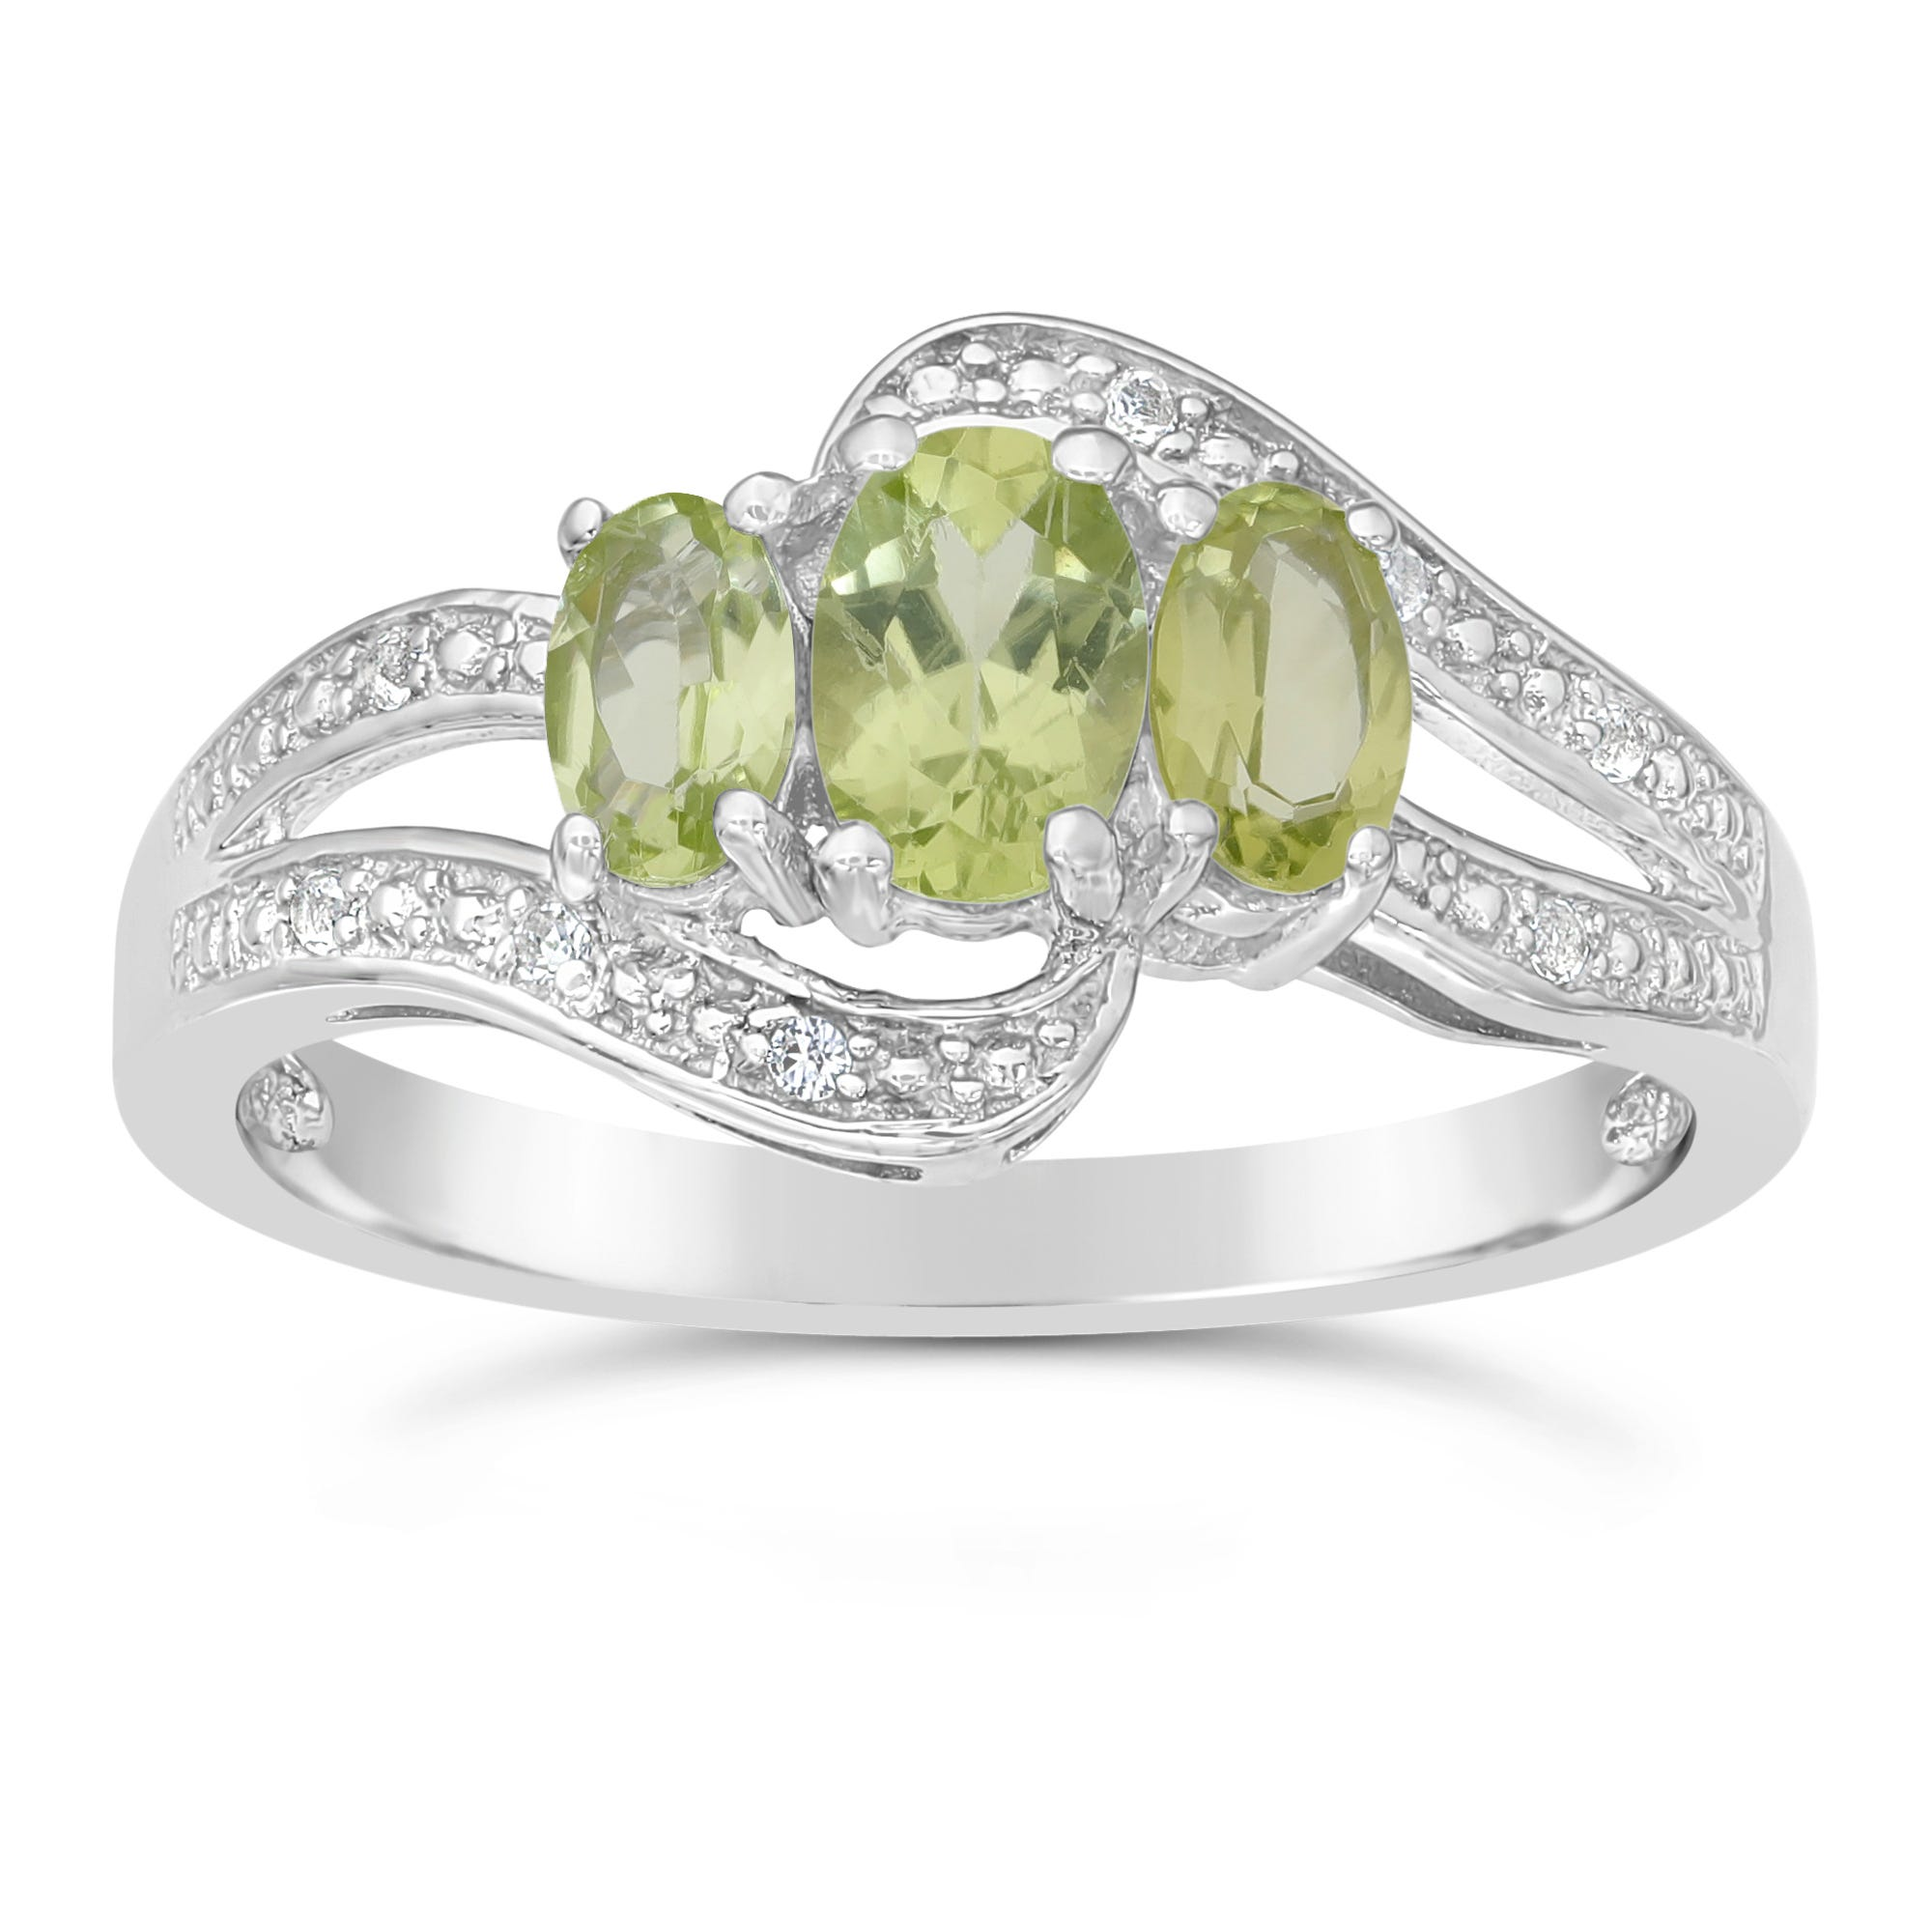 Triple Oval Peridot and White Topaz Ring in Sterling Silver